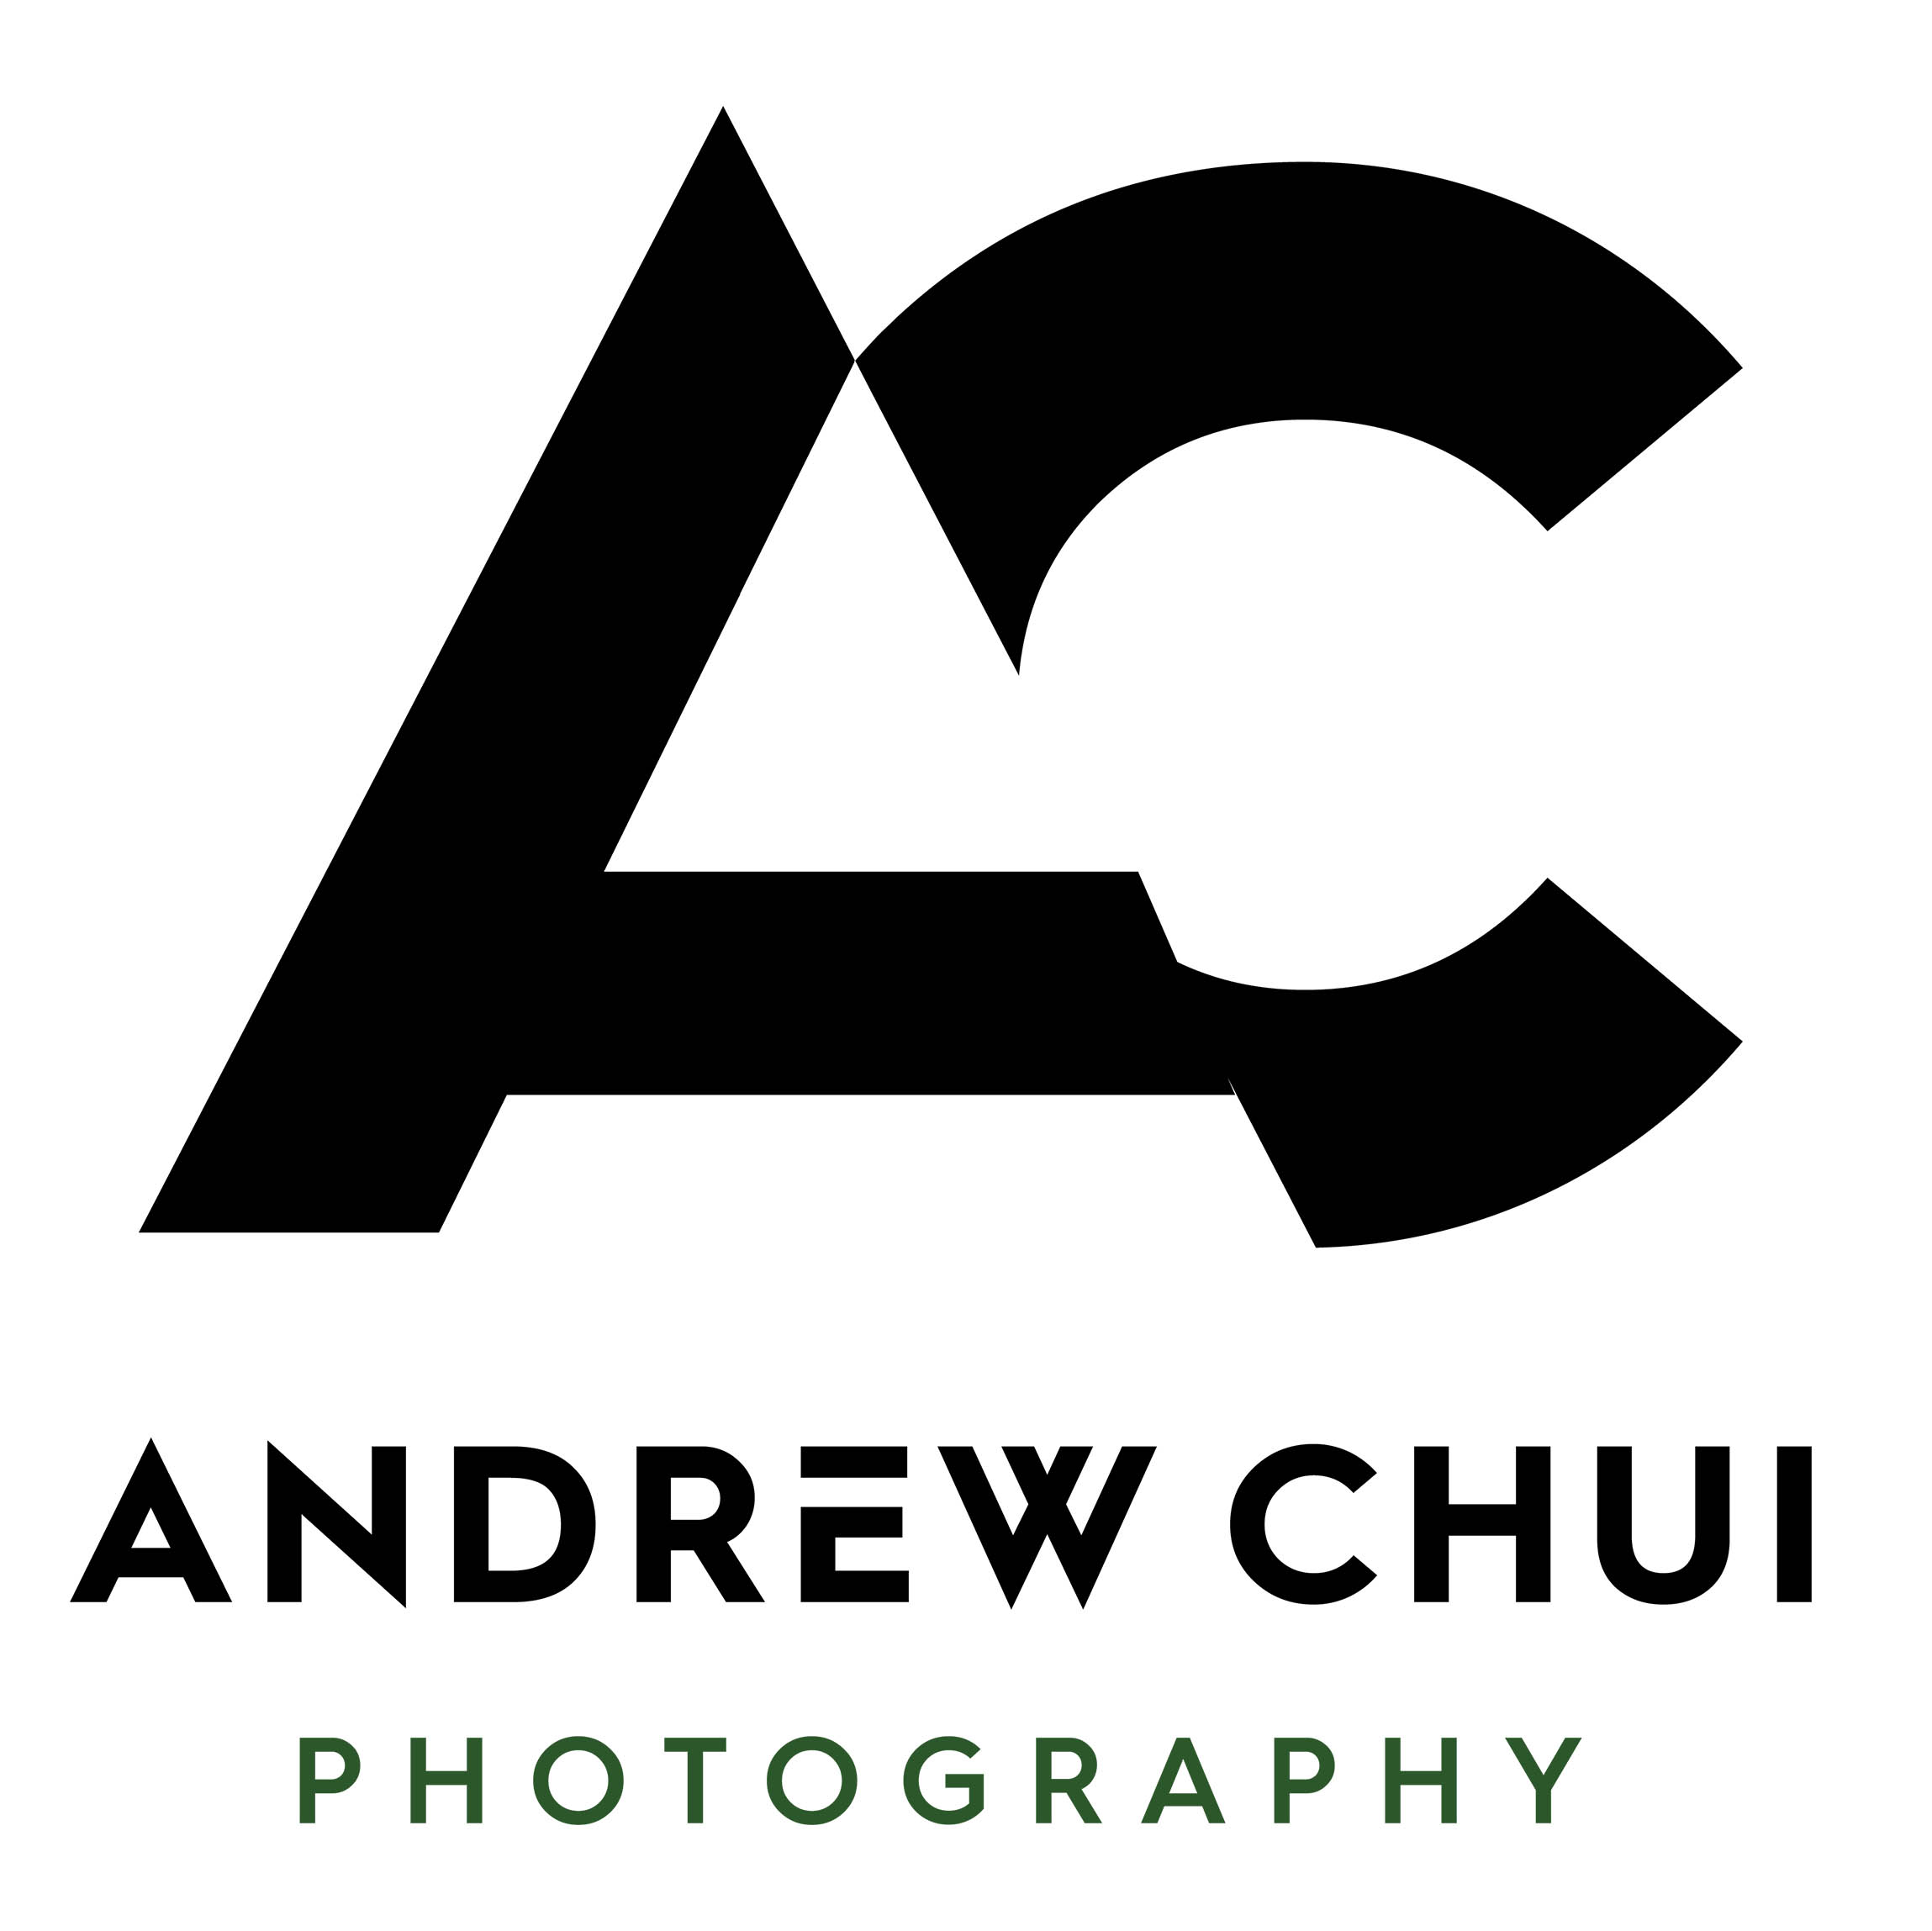 Andrew Chui Photography floor plan in Cliffside Park Fort Lee Franklin Lakes Hoboken Jersey City Maplewood Montclair Palisades Park Summit New York